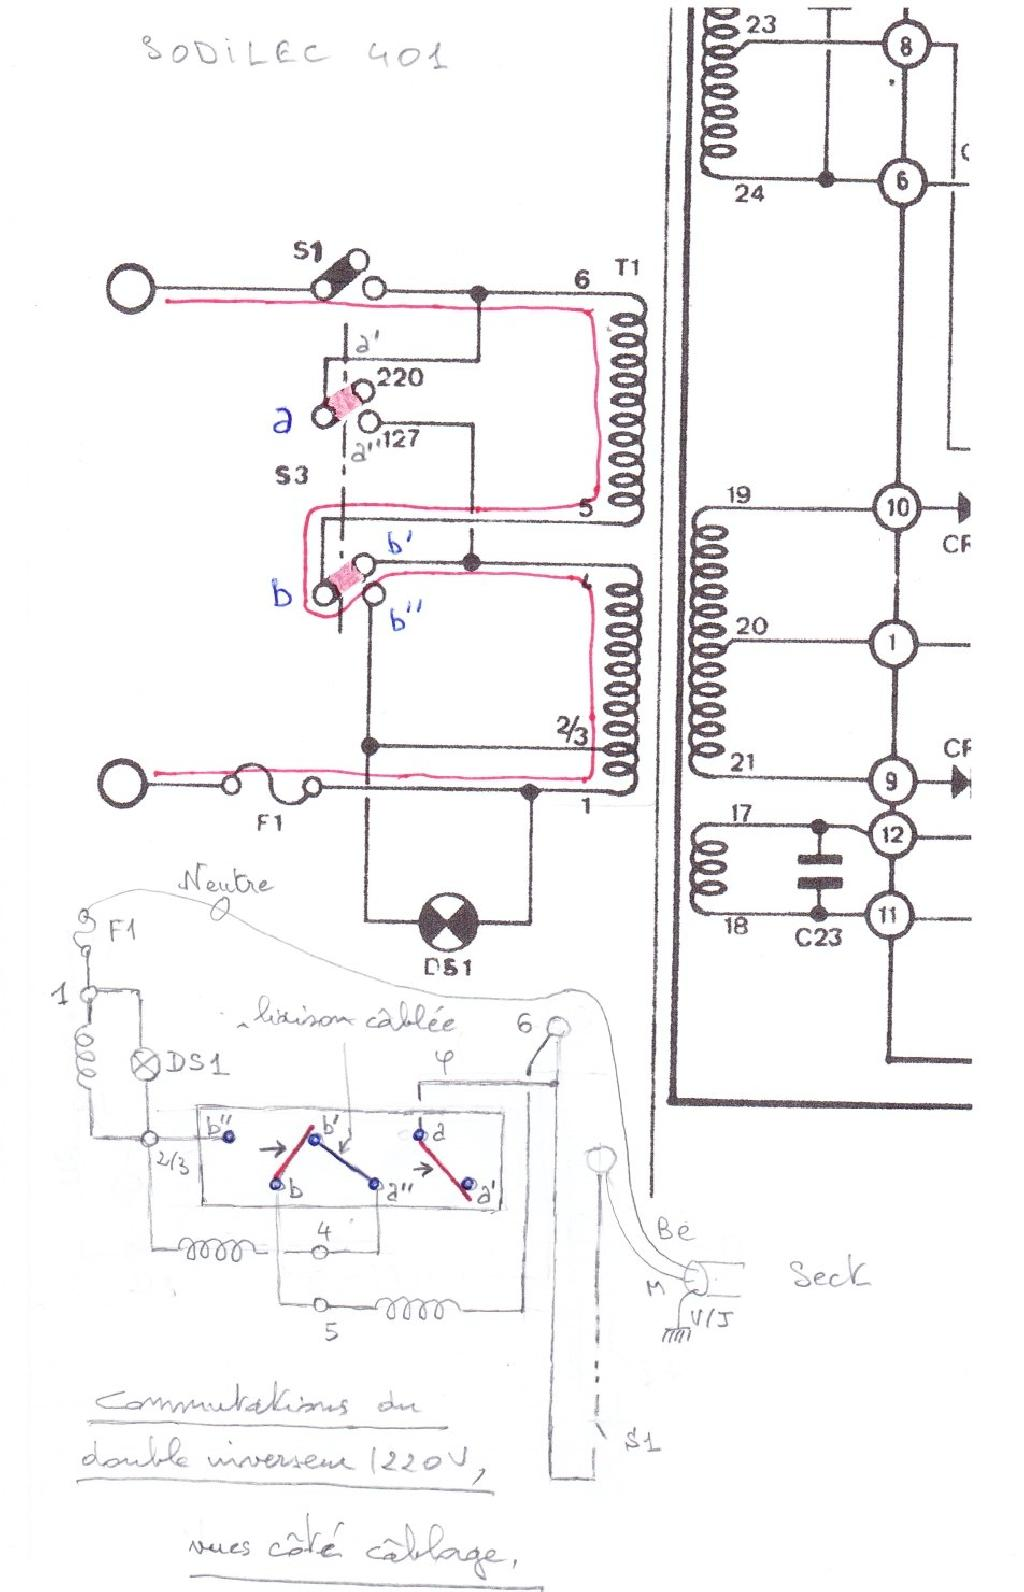 tsf auto electrical wiring diagramWiring Diagram Diagram Parts List For Model 502255381 Craftsman #17